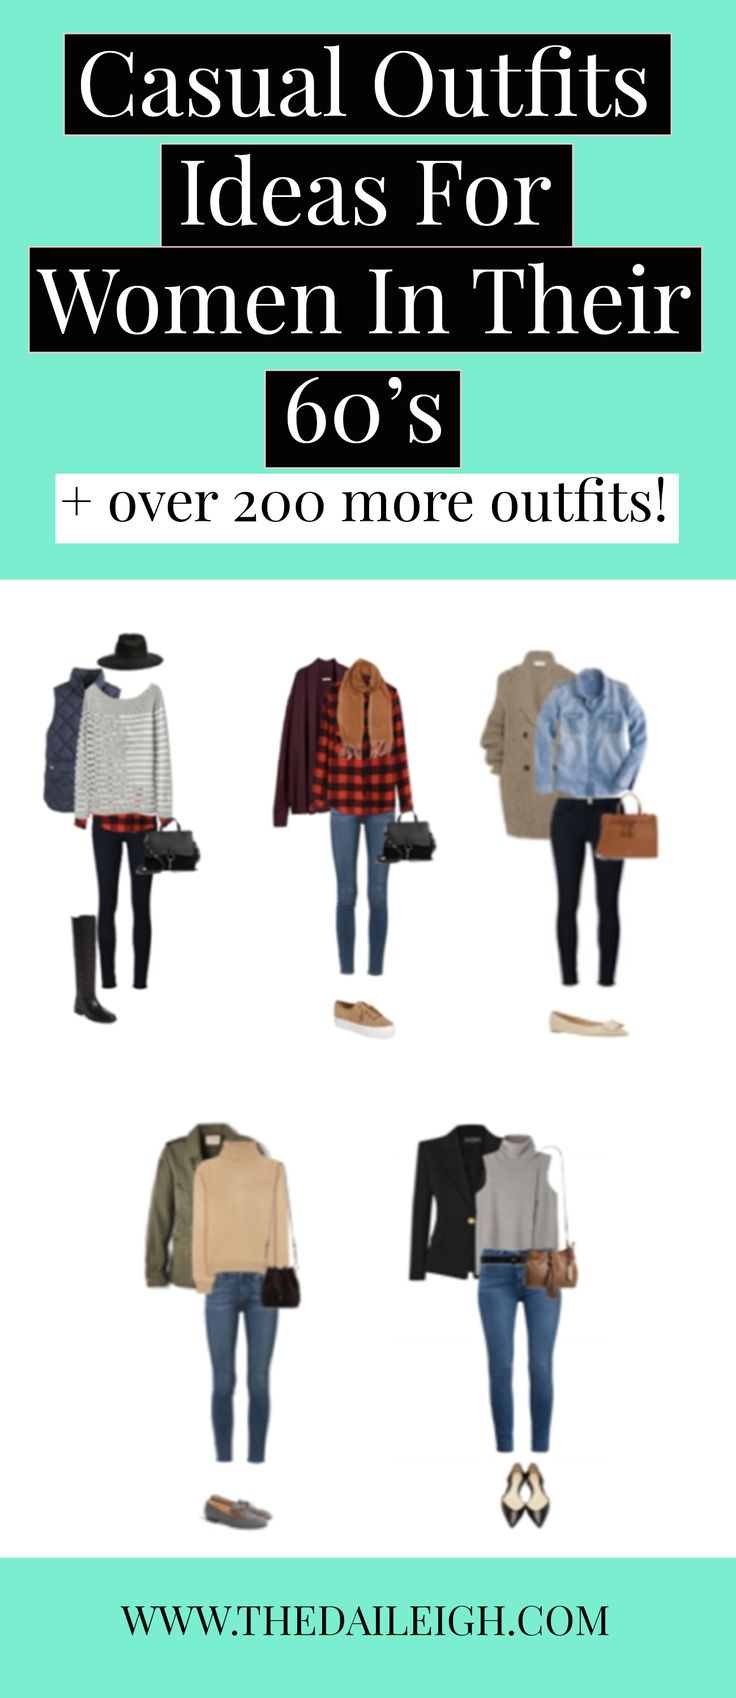 How To Dress In Your 60's | How To Dress Over 60 | Fashion Tips for Women | How To Dress Over 60 Fashion | How To Dress Over 60 Body Types | How To Dress Over 60 Fashion For Women | How To Dress Over 60 Outfits | Outfit Ideas For Women Over 60 | Outfit Ideas For Women Over 60 Winter | Wardrobe Basics For Women Over 60 | Wardrobe Basics For Women Over 60 Chic | Wardrobe Staples For Women Over 60 | Wardrobe Essentials For Women Over 60 | Style At 60 | Style At 60 Women | Style At 6...